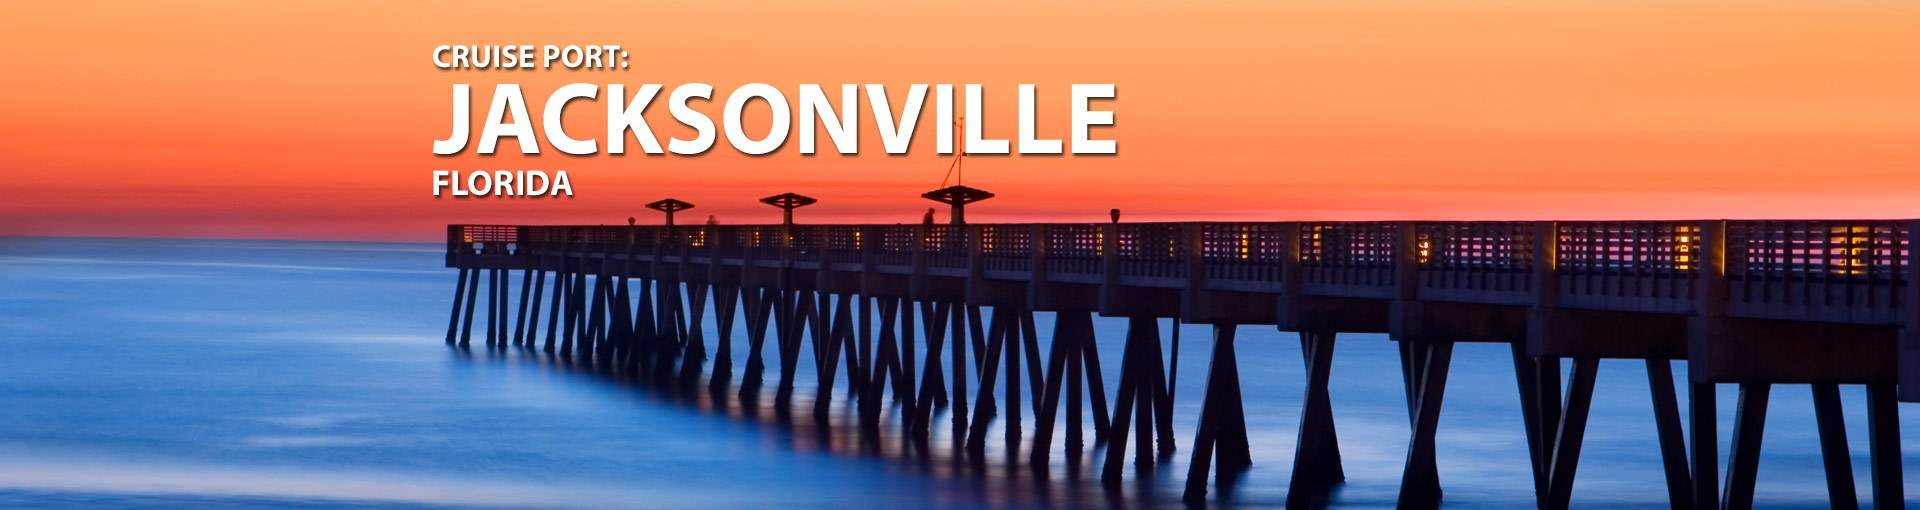 Cruise Port: Jacksonville, Florida